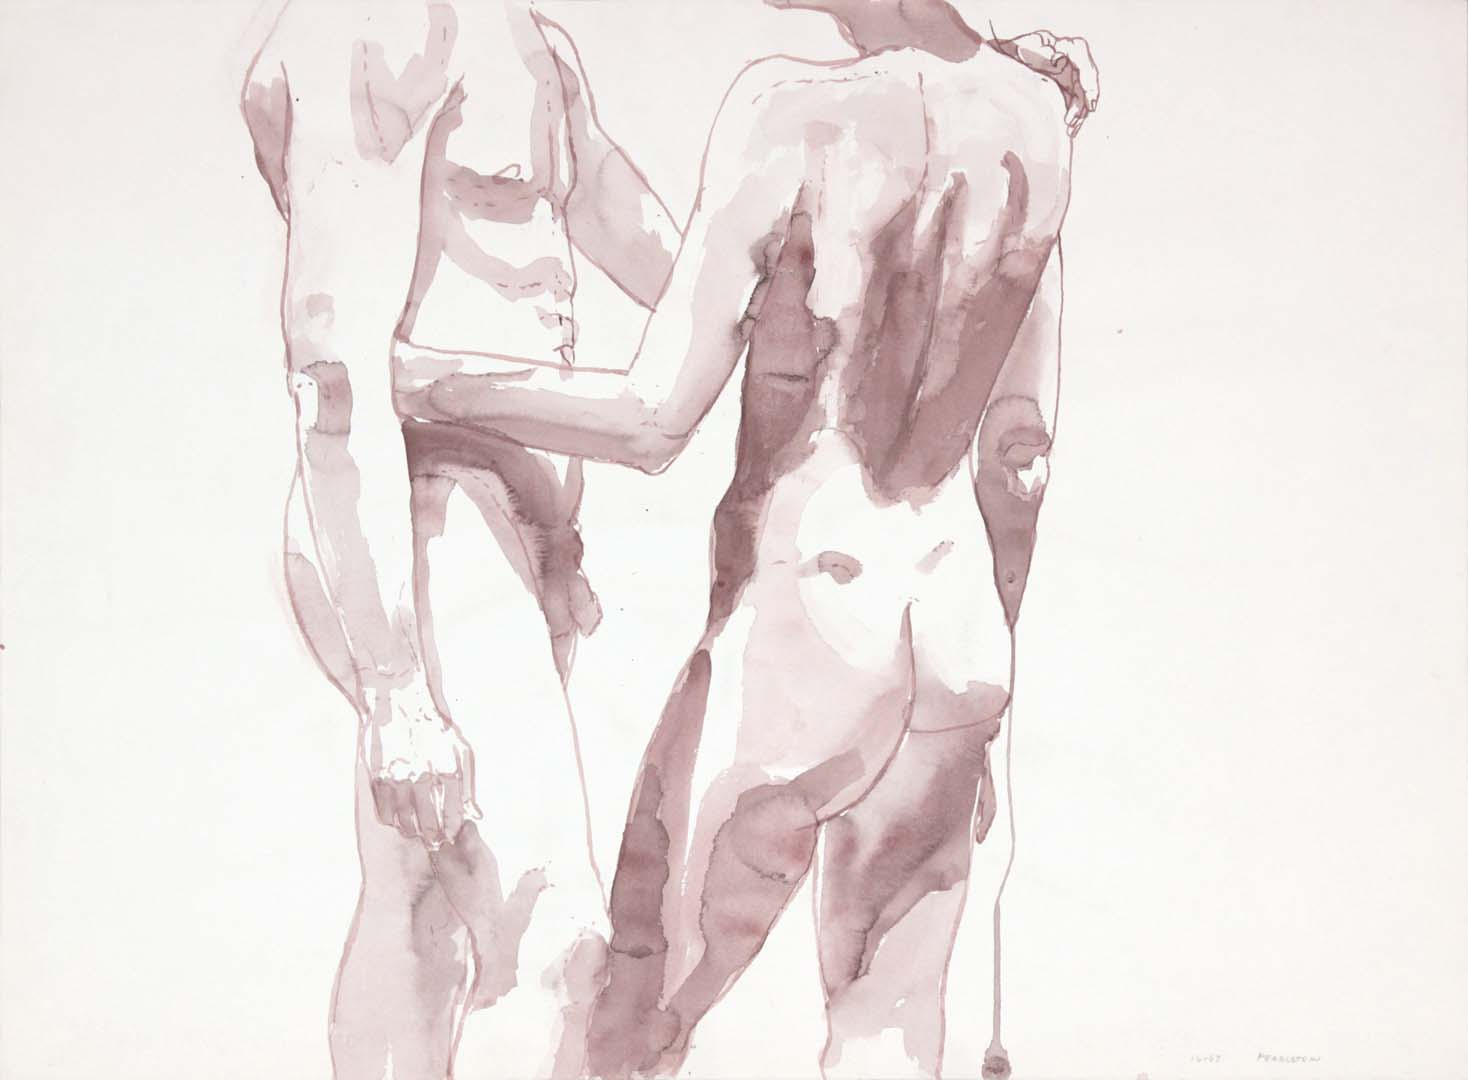 Two Nudes Facing Each Other Sepia 22 x 29.875